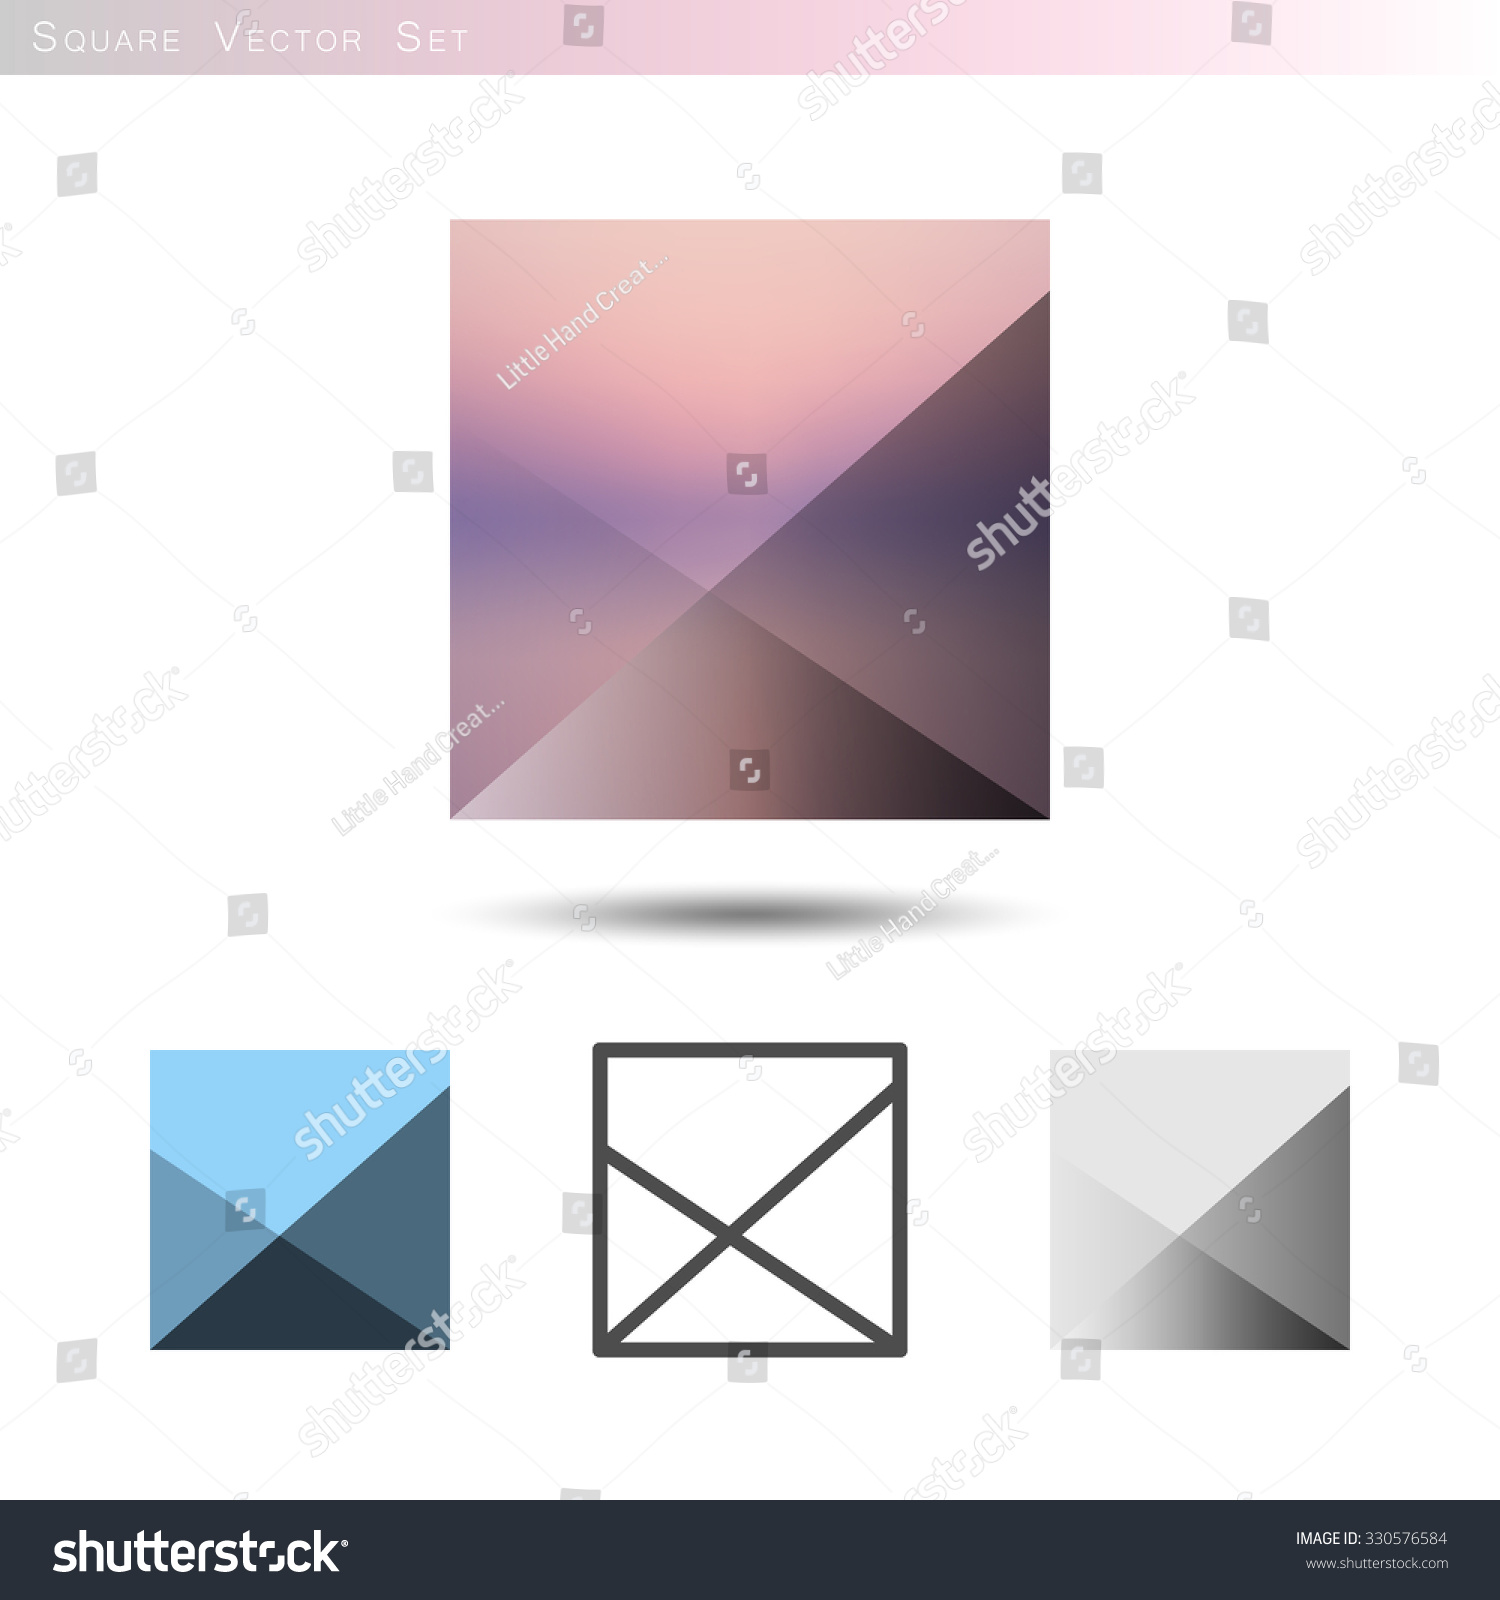 Square Vector Collection Isolated On White Stock Royalty Colorful Geometric Shapes Circuit Board Pattern Wall Clock Cube Set With Gradient Blue Color Palette